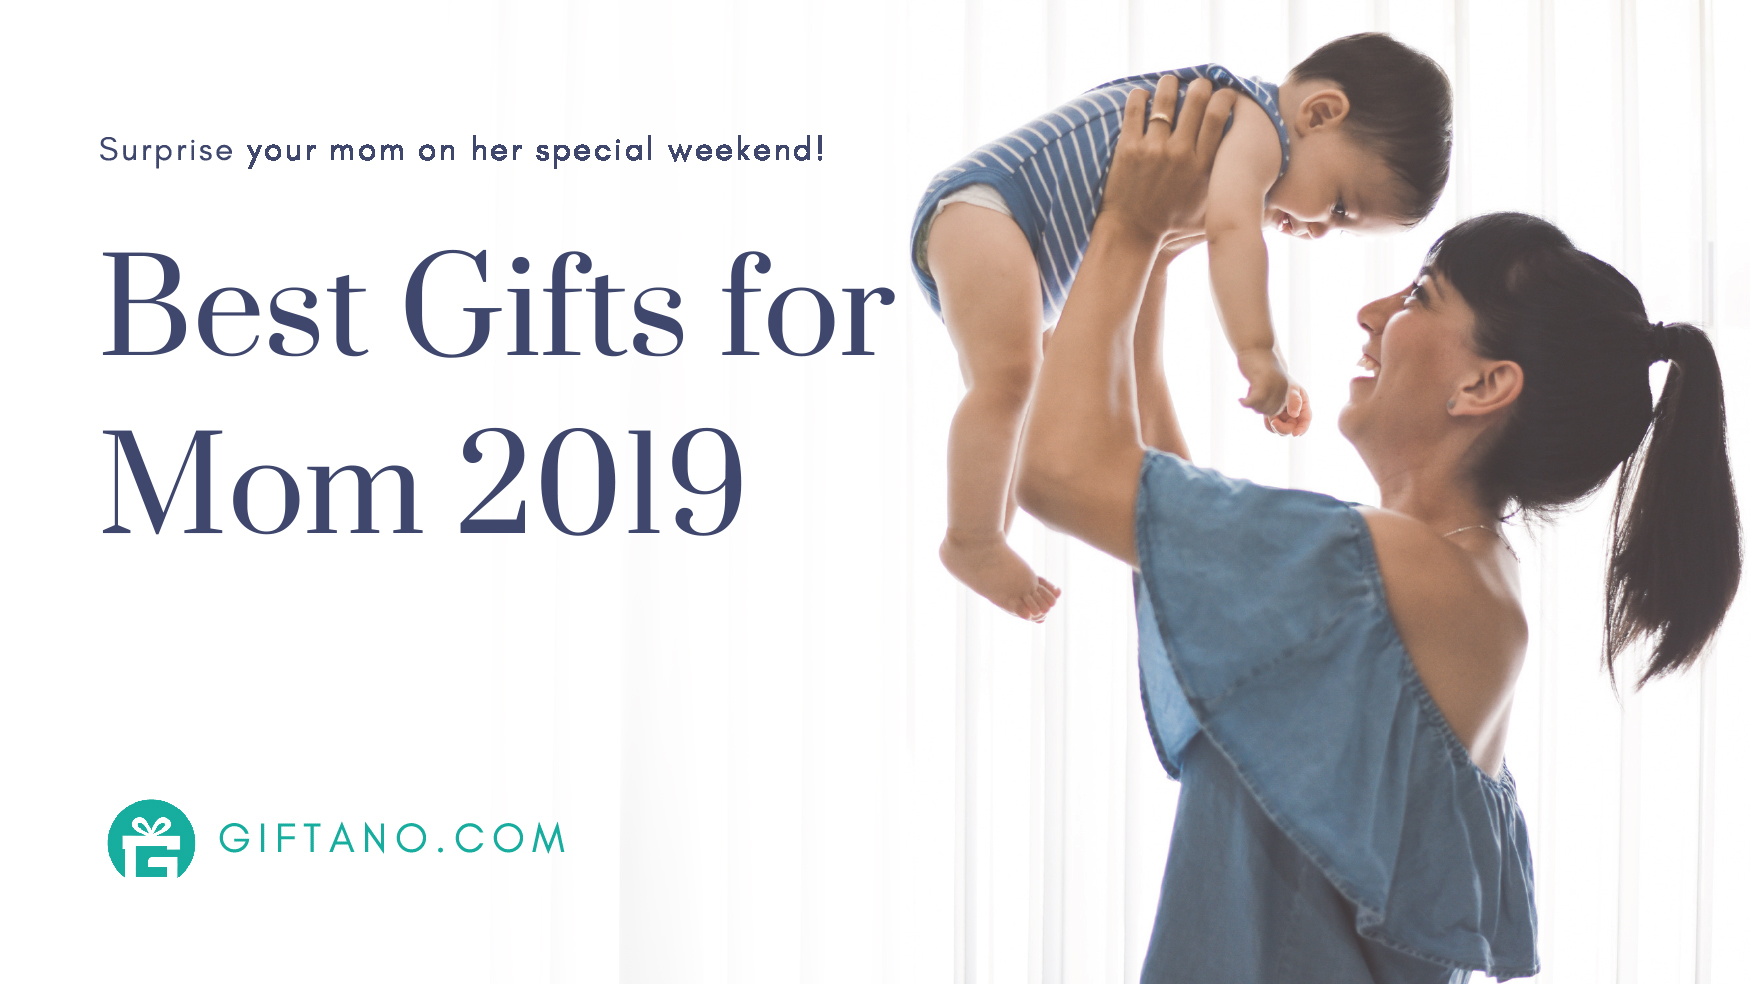 Best Mother\u002639;s Day Gifts 2019  Giftano.com